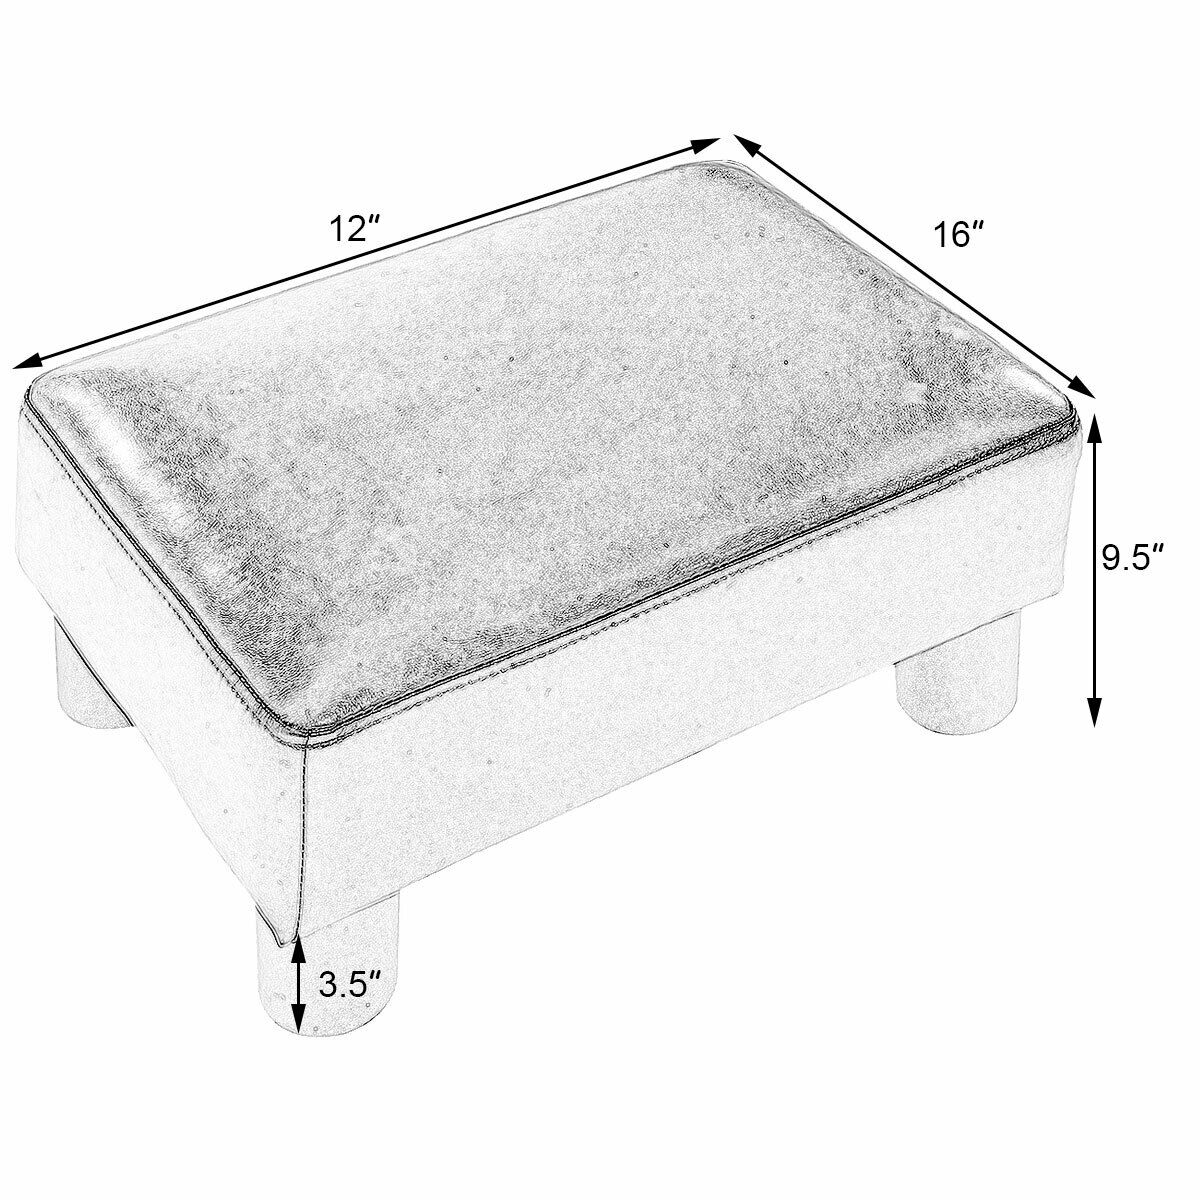 Costway Tabouret Ottoman Pouf Repose-Pied Si/ège Rectangulaire Cuir PU 40 30 Blanc 24cm